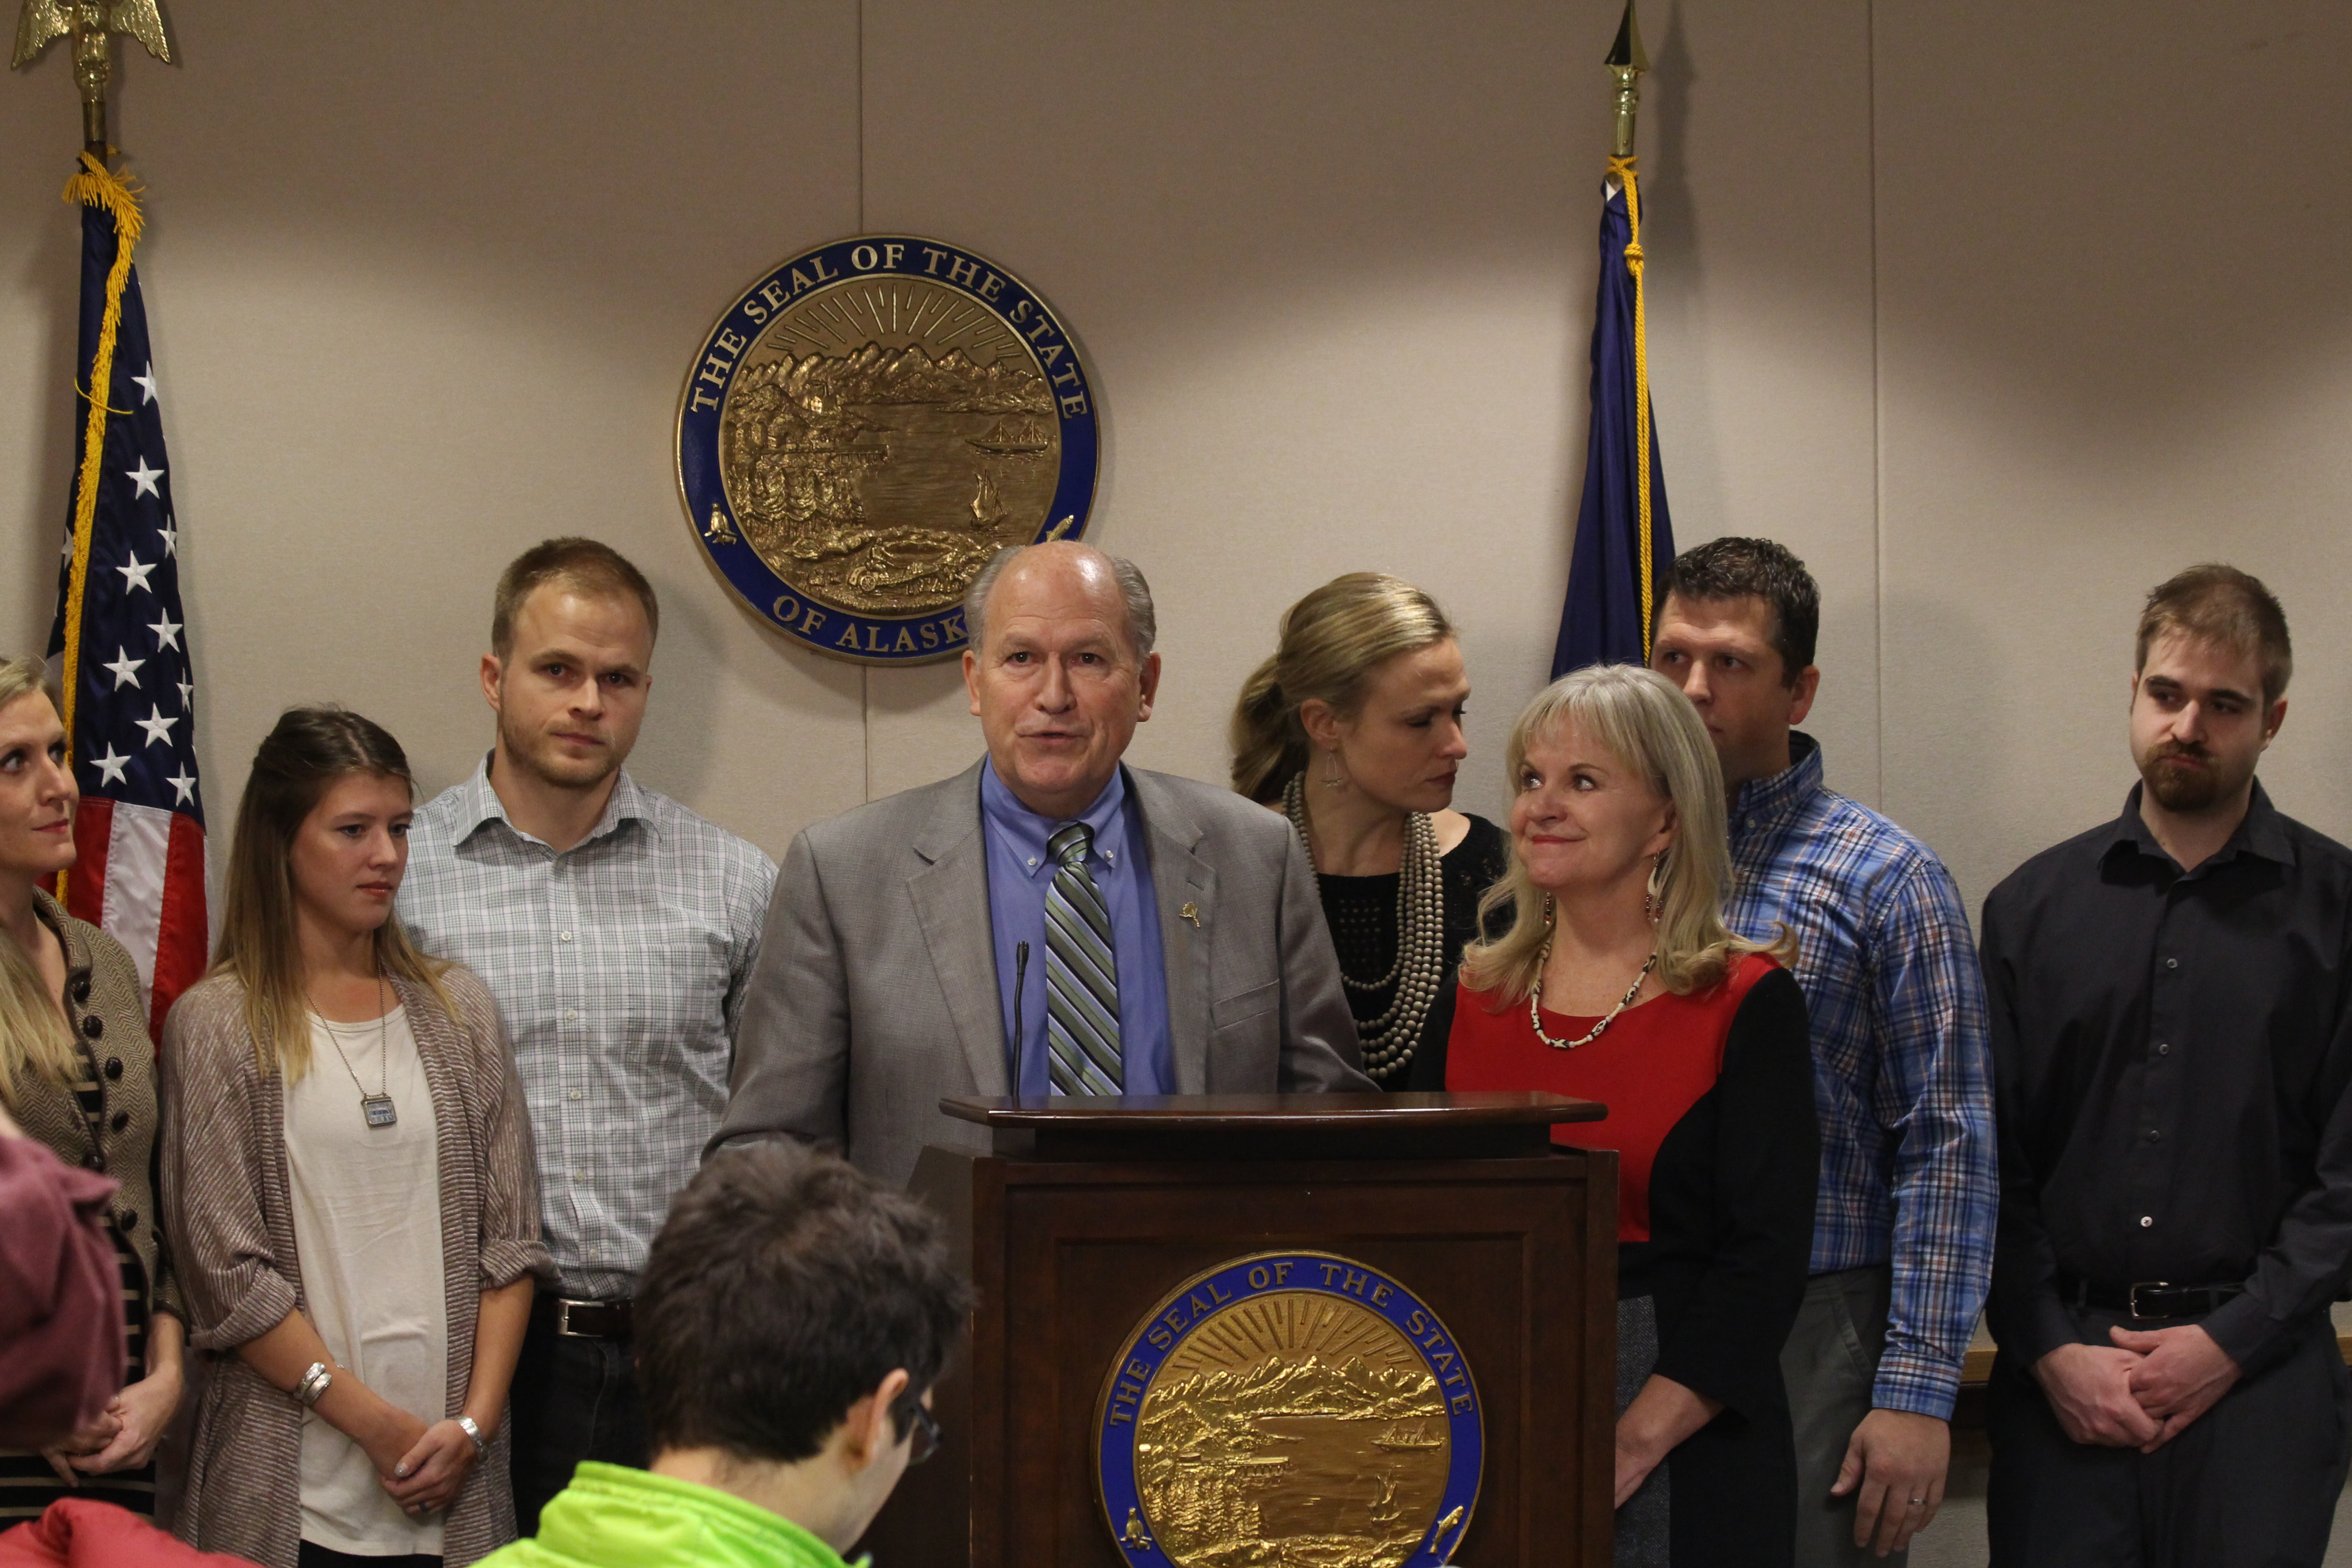 Bill Walker and (from left to right) Tessa Linderman (daughter), Sabrina Walker (daughter-in-law), Adam Walker (son), Lindsay Hobson (daughter), First Lady Donna Walker, Greg Hobson (son-in-law) and Jordan walker (son), as Governor Walker talks to press about his prostate cancer diagnosis. Not pictured: Lt. Governor Byron Mallott and Walker's brother Bob Walker. (Photo by Wesley Early, Alaska Public Media - Anchorage)